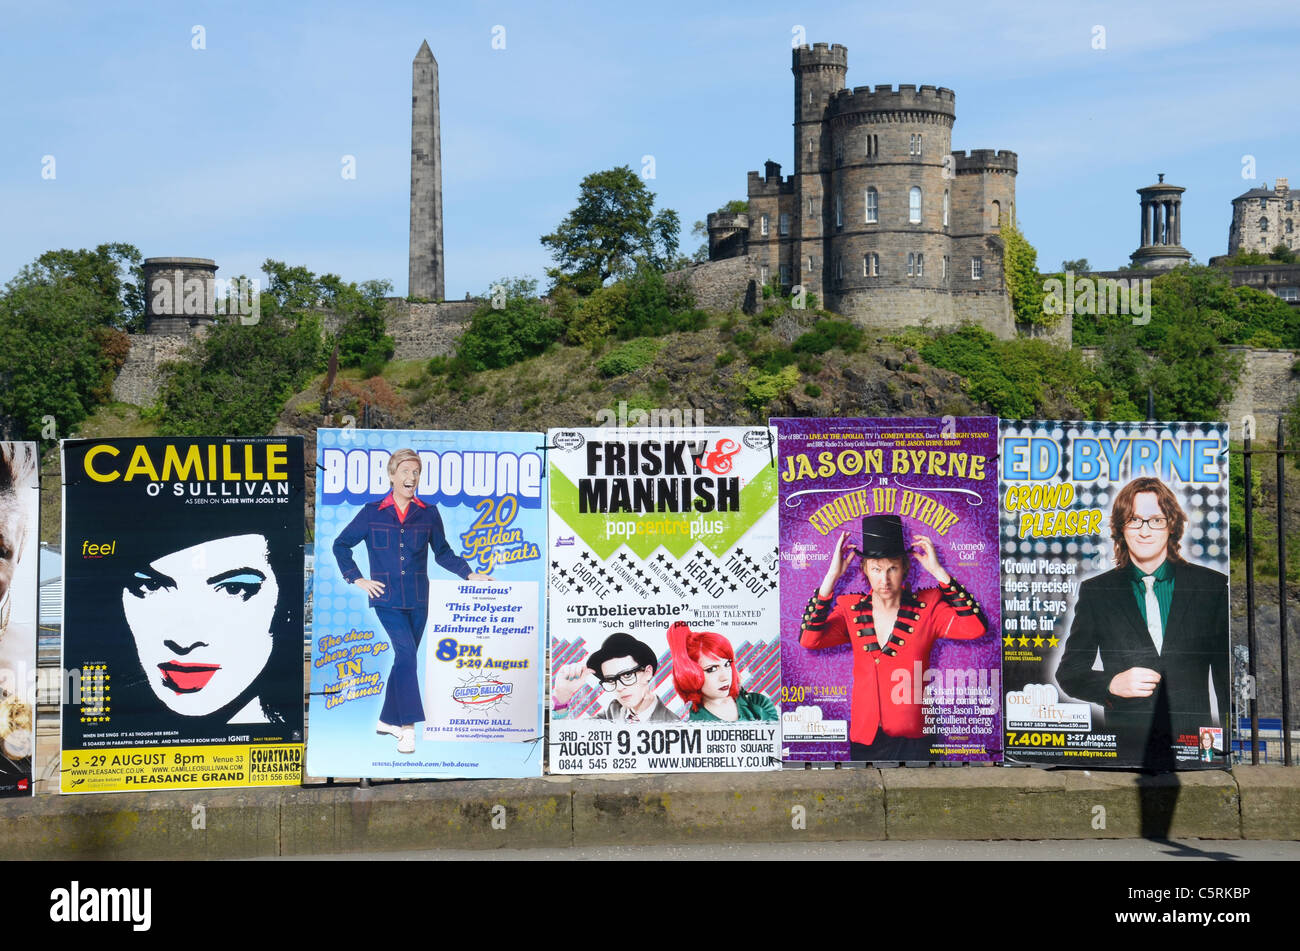 Posters advertising Edinburgh Fringe shows against the backdrop of Calton Hill. - Stock Image